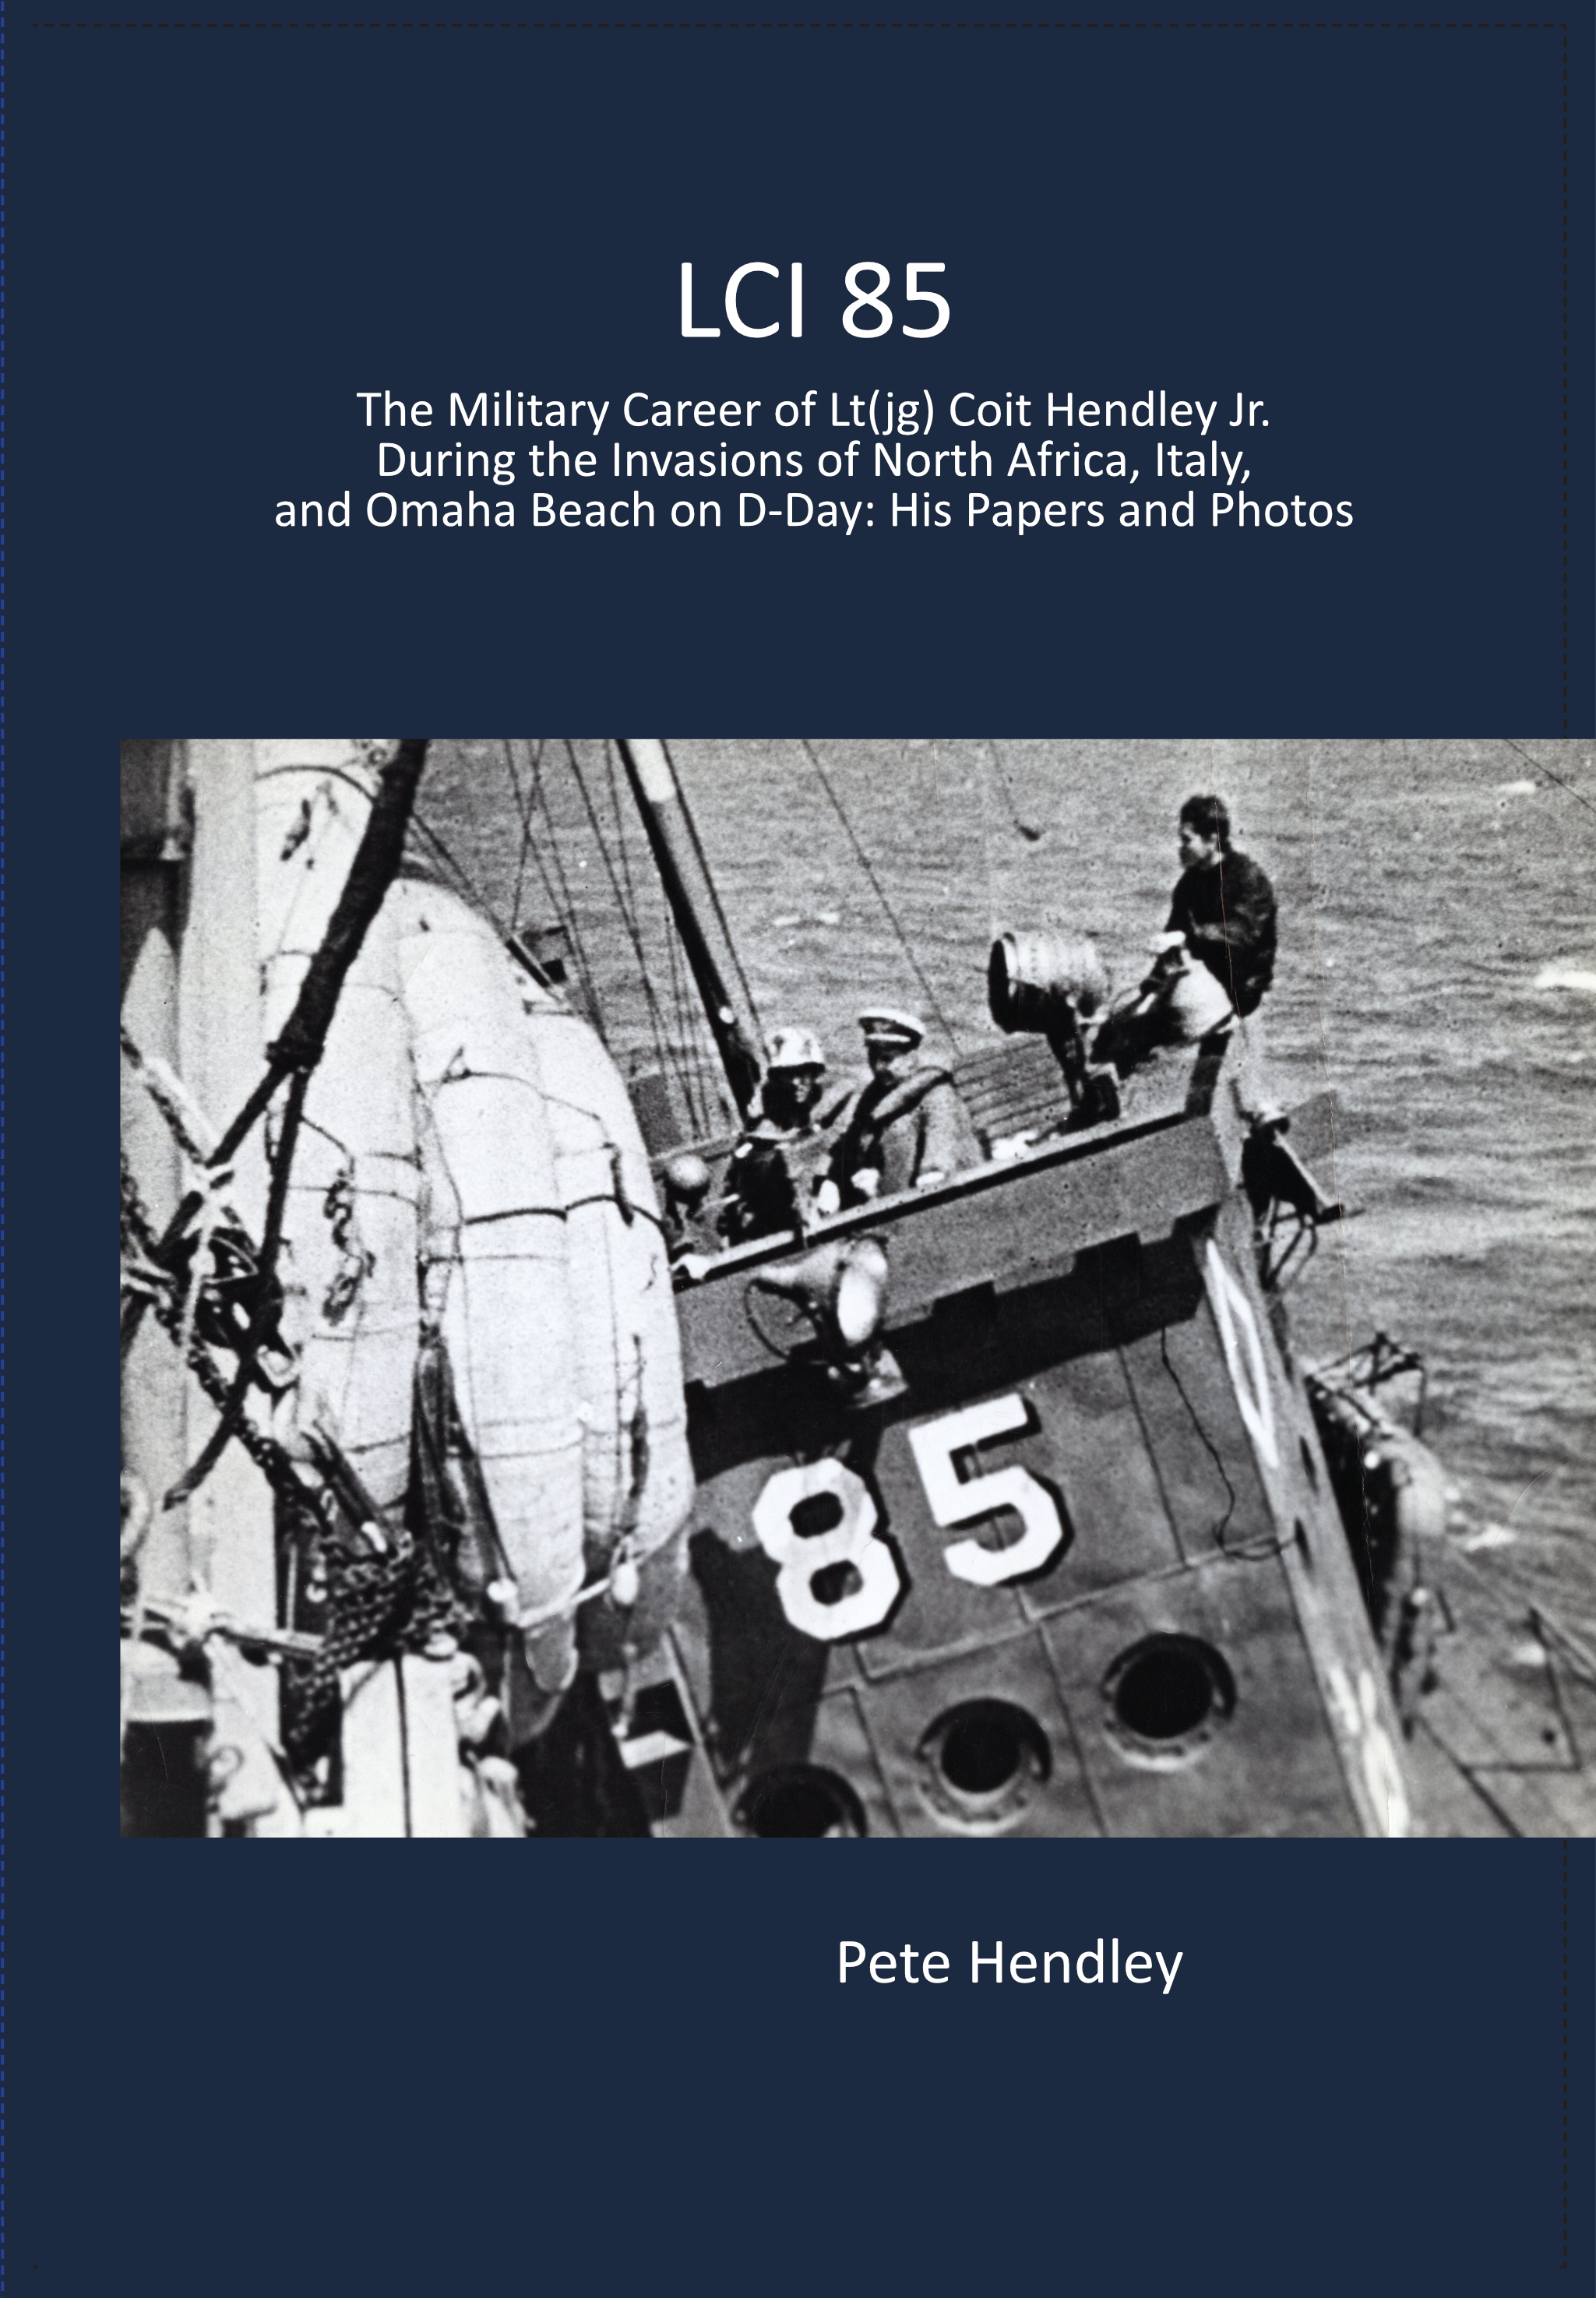 LCI 85 - The Military Career of Lt.(jg) Coit Hendley Jr. During the Invasions of North Africa, Italy, and Omaha Beach on D-Day: His Papers and PhotosNon-fiction : History6.9x9.6/365pages/50photos/ 85documents.Yewell Street PressISBN: 978-0-9964993-6-1If you purchase the paperback on Amazon, don't forget to claim your free ebook by looking for the Matchbox deal further down on the right on the listings page.